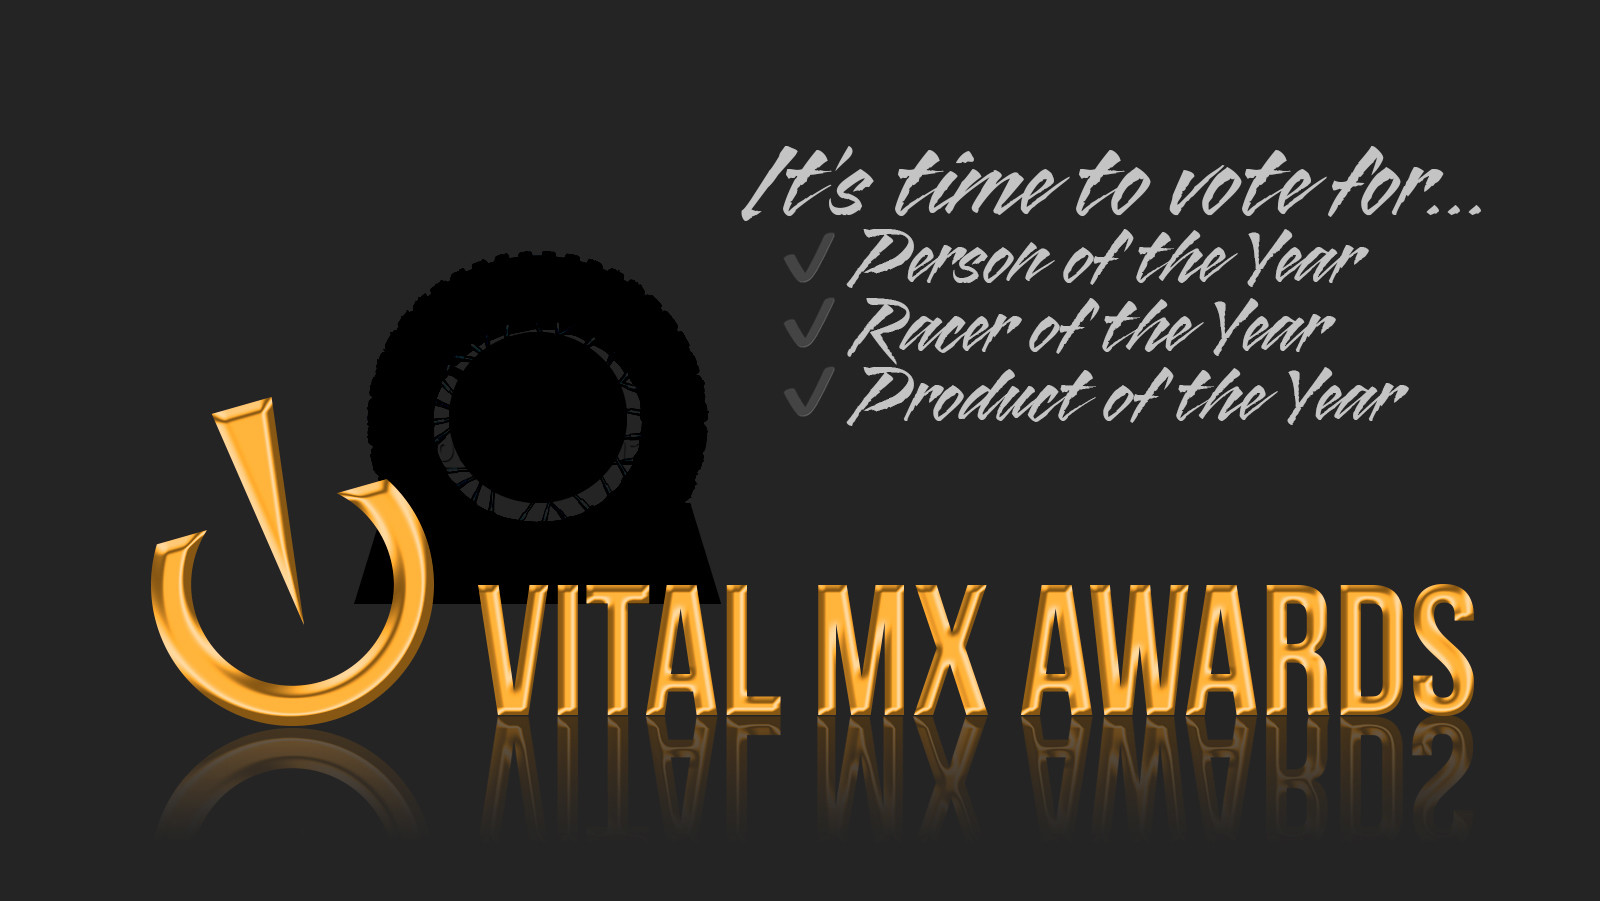 The Vital MX Awards - It's Time To Vote!